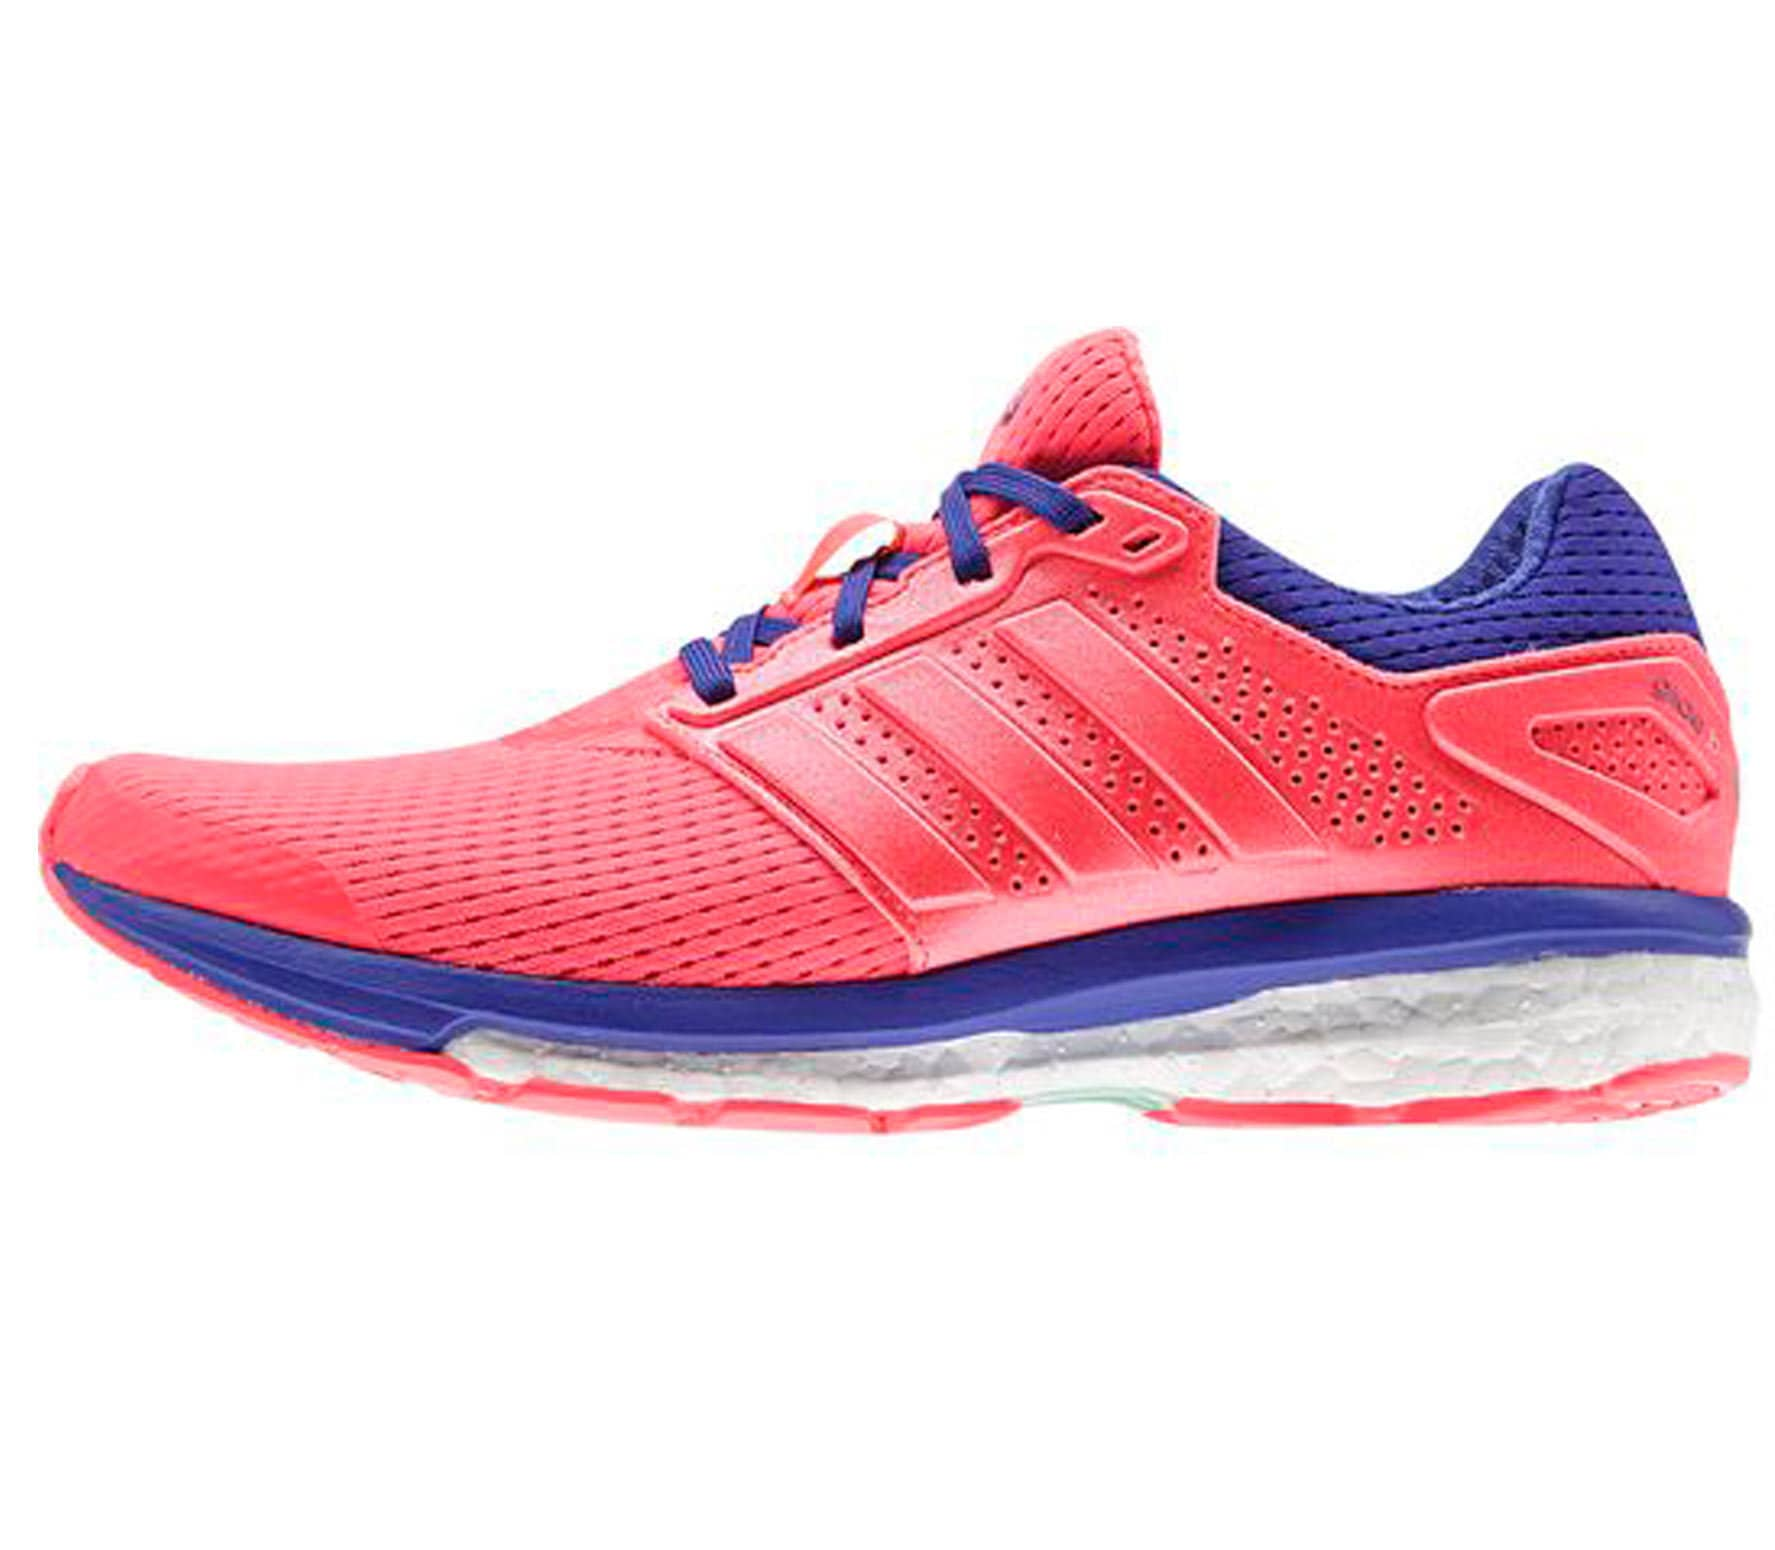 0d9fd7b7ae6d0 Adidas - Supernova Glide Boost 7 women s running shoes (pink) - buy ...